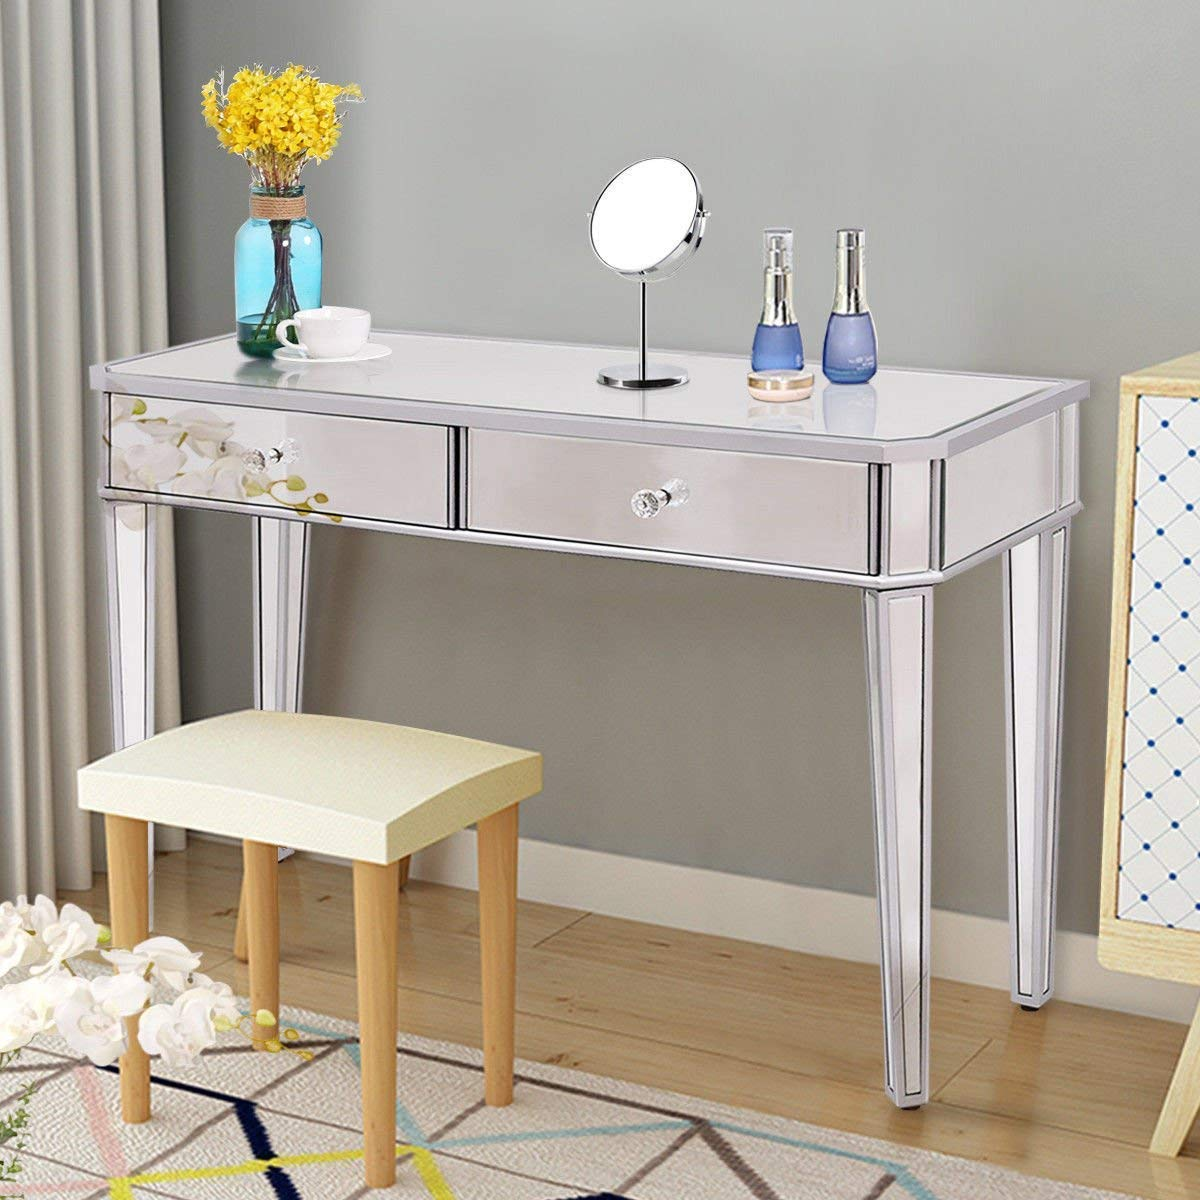 Tangkula Mirrored Makeup Table Desk Vanity for Women with 2 Drawers Home Office Smooth Silver Finish Vanity Dressing Table for Women Large Storage Drawers Writing Desk Modern Media Console Table by Tangkula